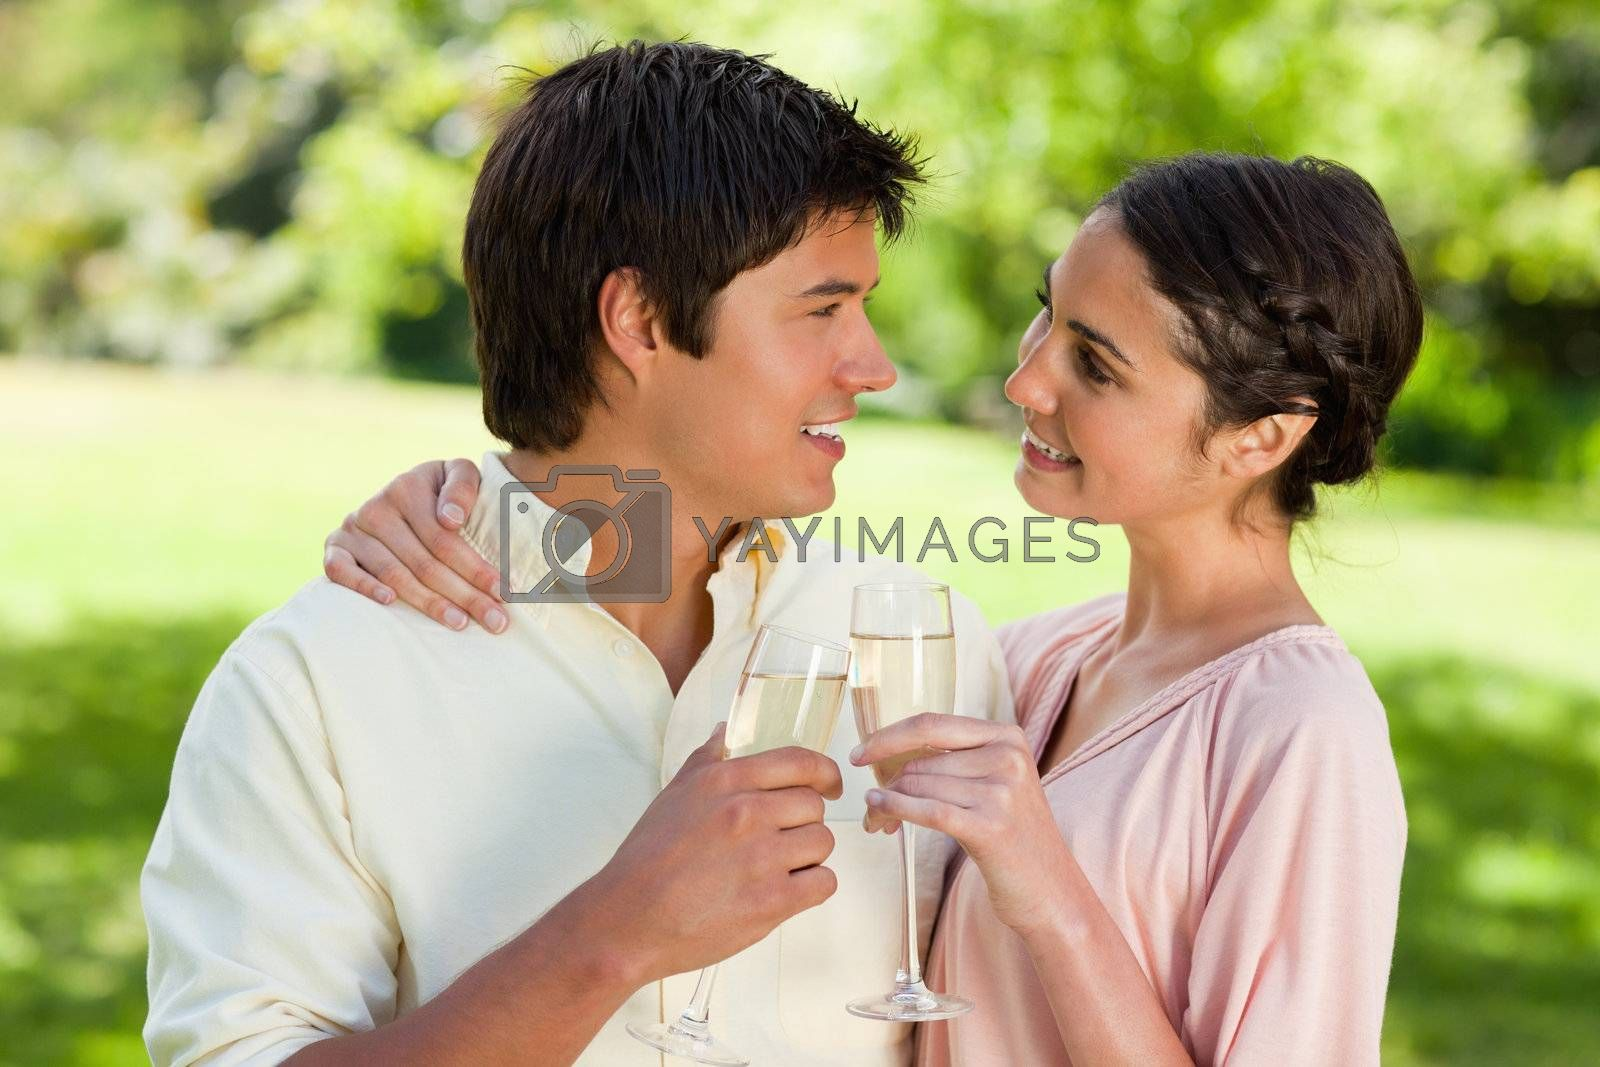 Man and a woman smiling happily as they look at each other while touching glasses of champagne in celebration